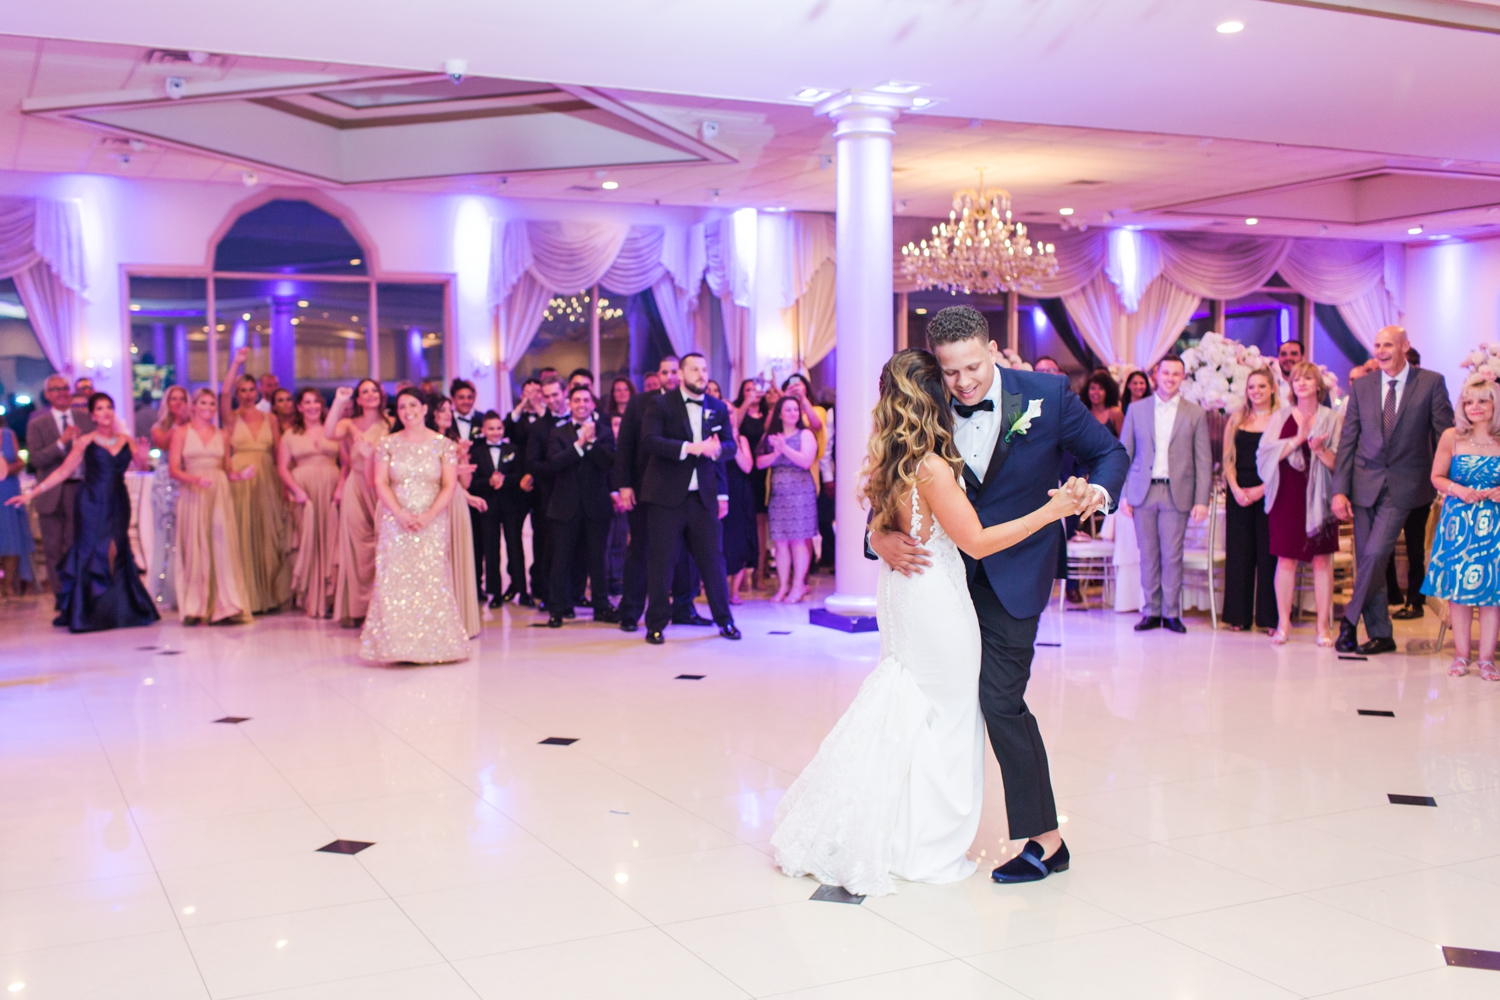 greentree-country-club-wedding-new-rochelle-ny-connecticut-photographer-shaina-lee-photography-photo